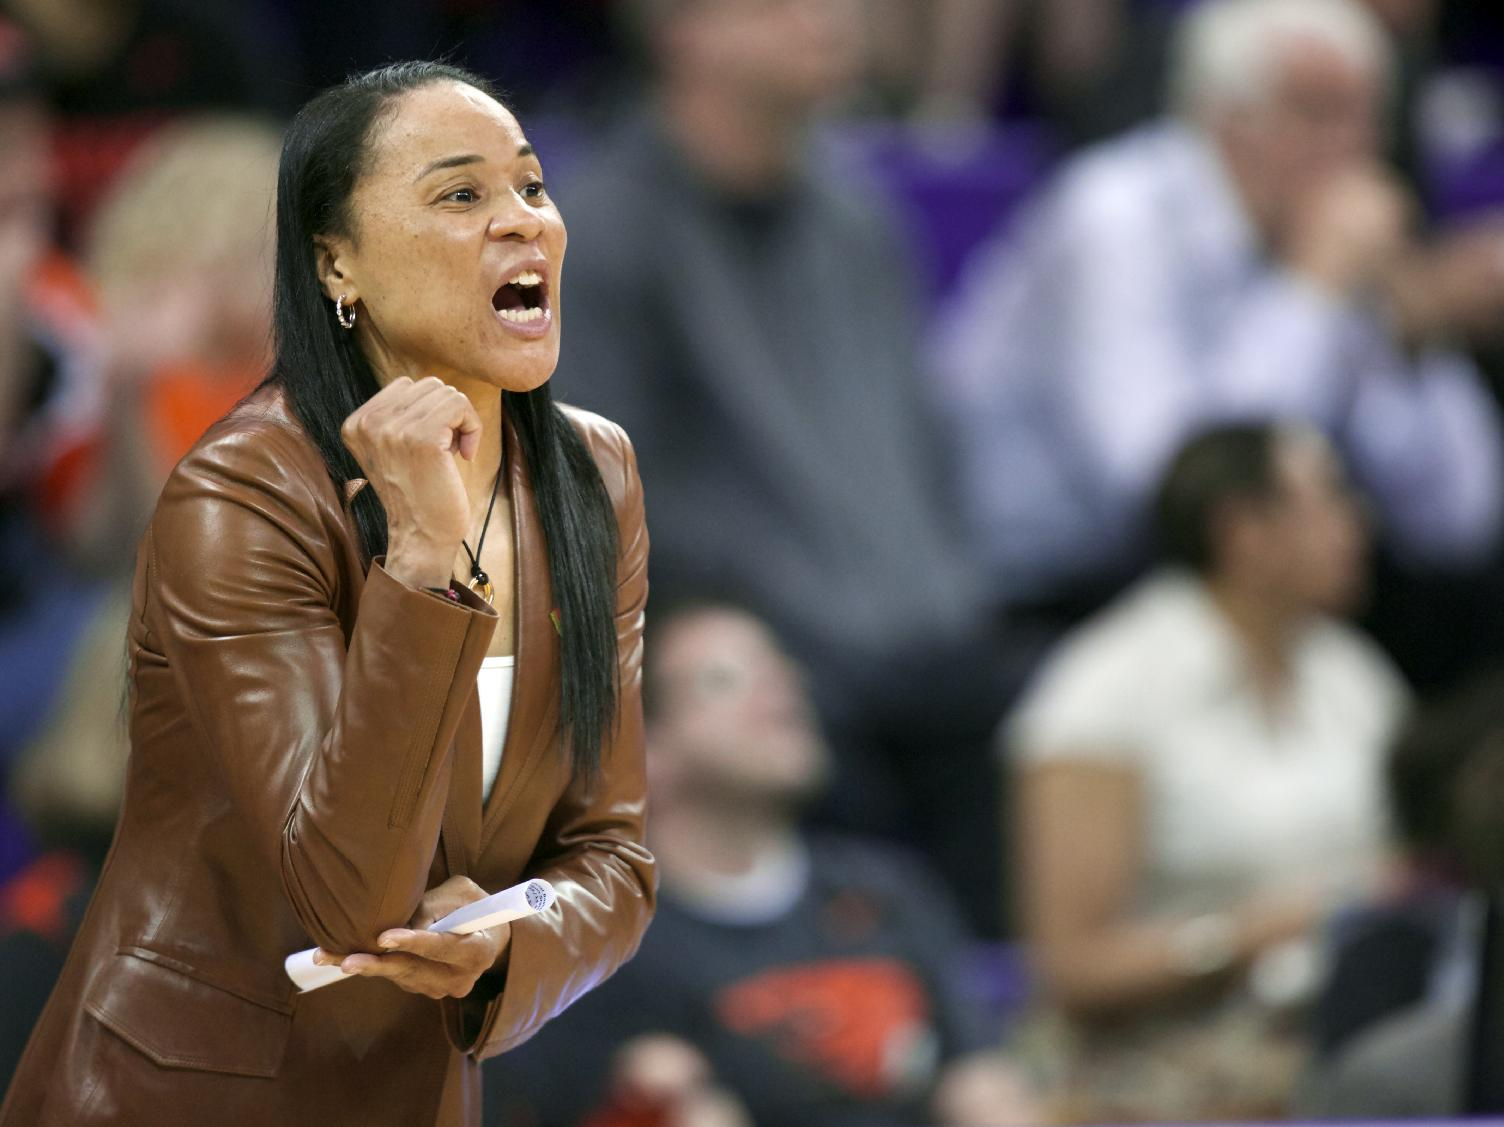 In this March 25, 2014, file photo, South Carolina head coach Dawn Staley yells to her team during the first half of a second-round game against Oregon State in the NCAA women's college basketball tournament in Seattle. After a landmark season that saw the Gamecocks earn win the Southeastern Conference regular-season title and earn a No. 1 seed in the NCAA tournament,  Staley landed the country's top college prospect in A'ja Wilson, setting off championship dreams among the fans who've gotten on board with the rising program